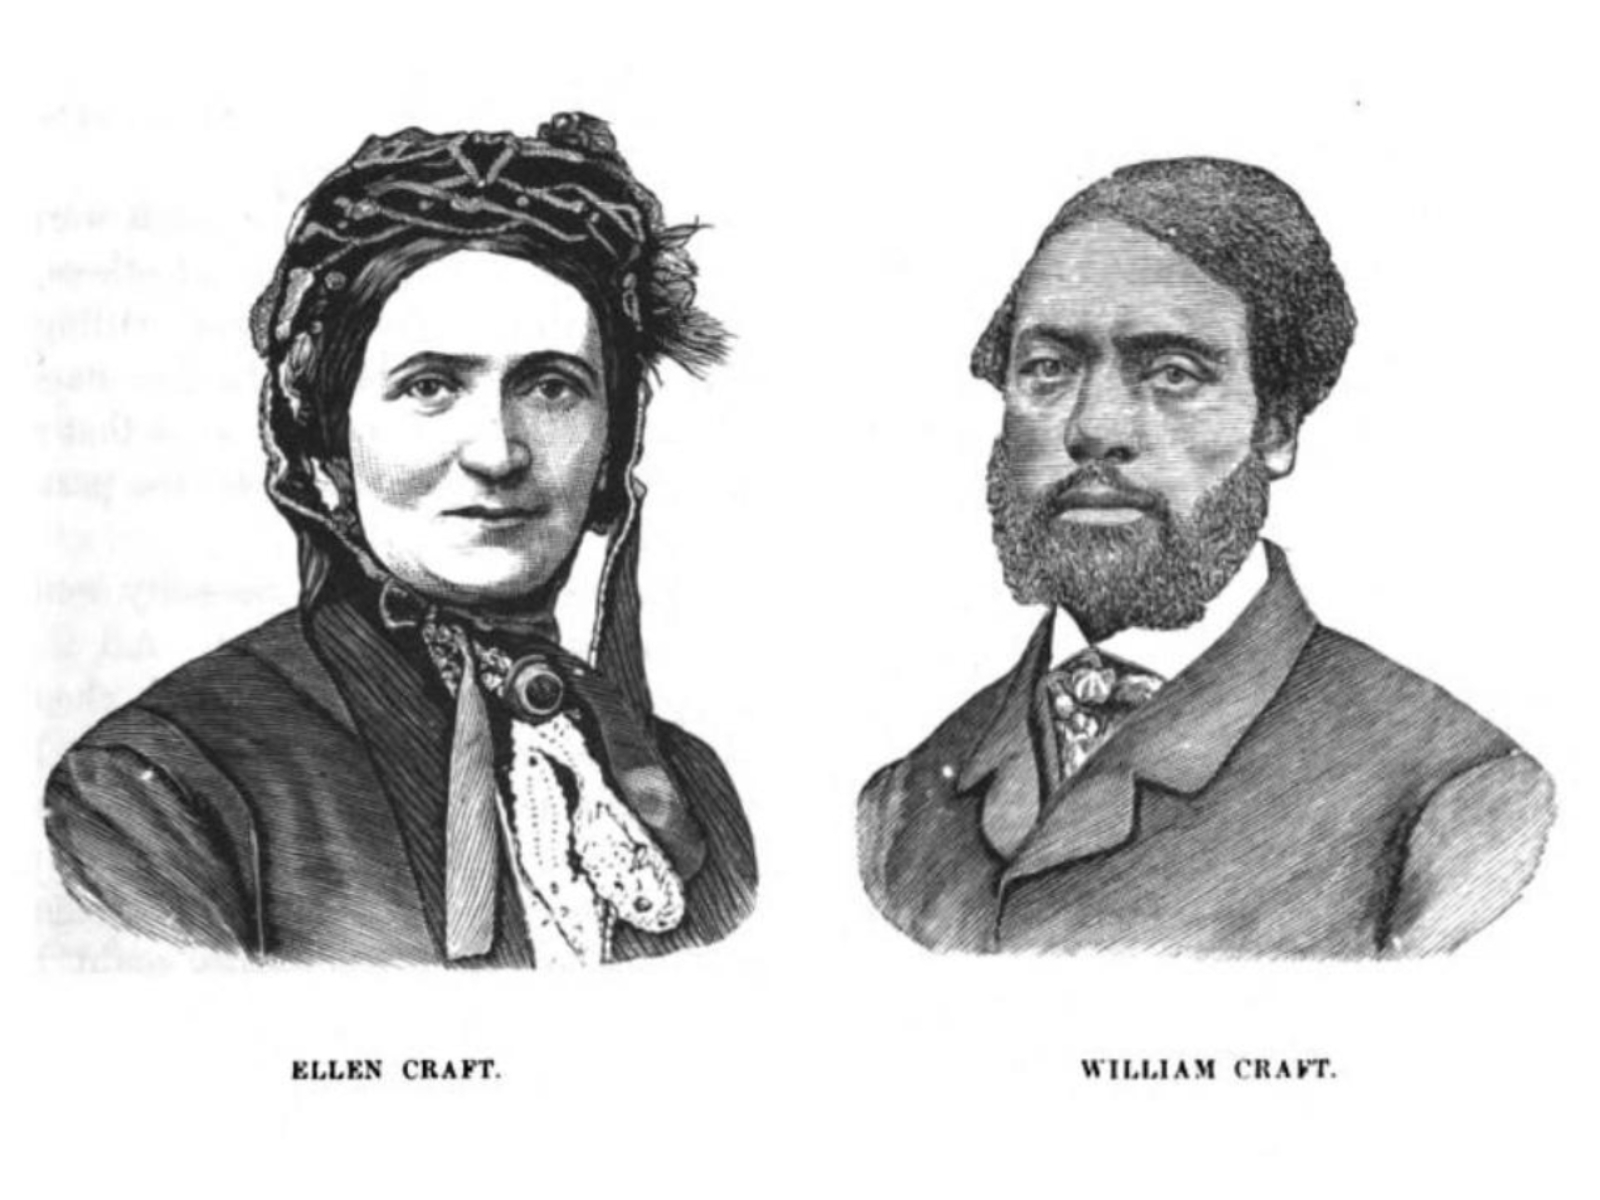 Print portraits of Ellen and William Craft